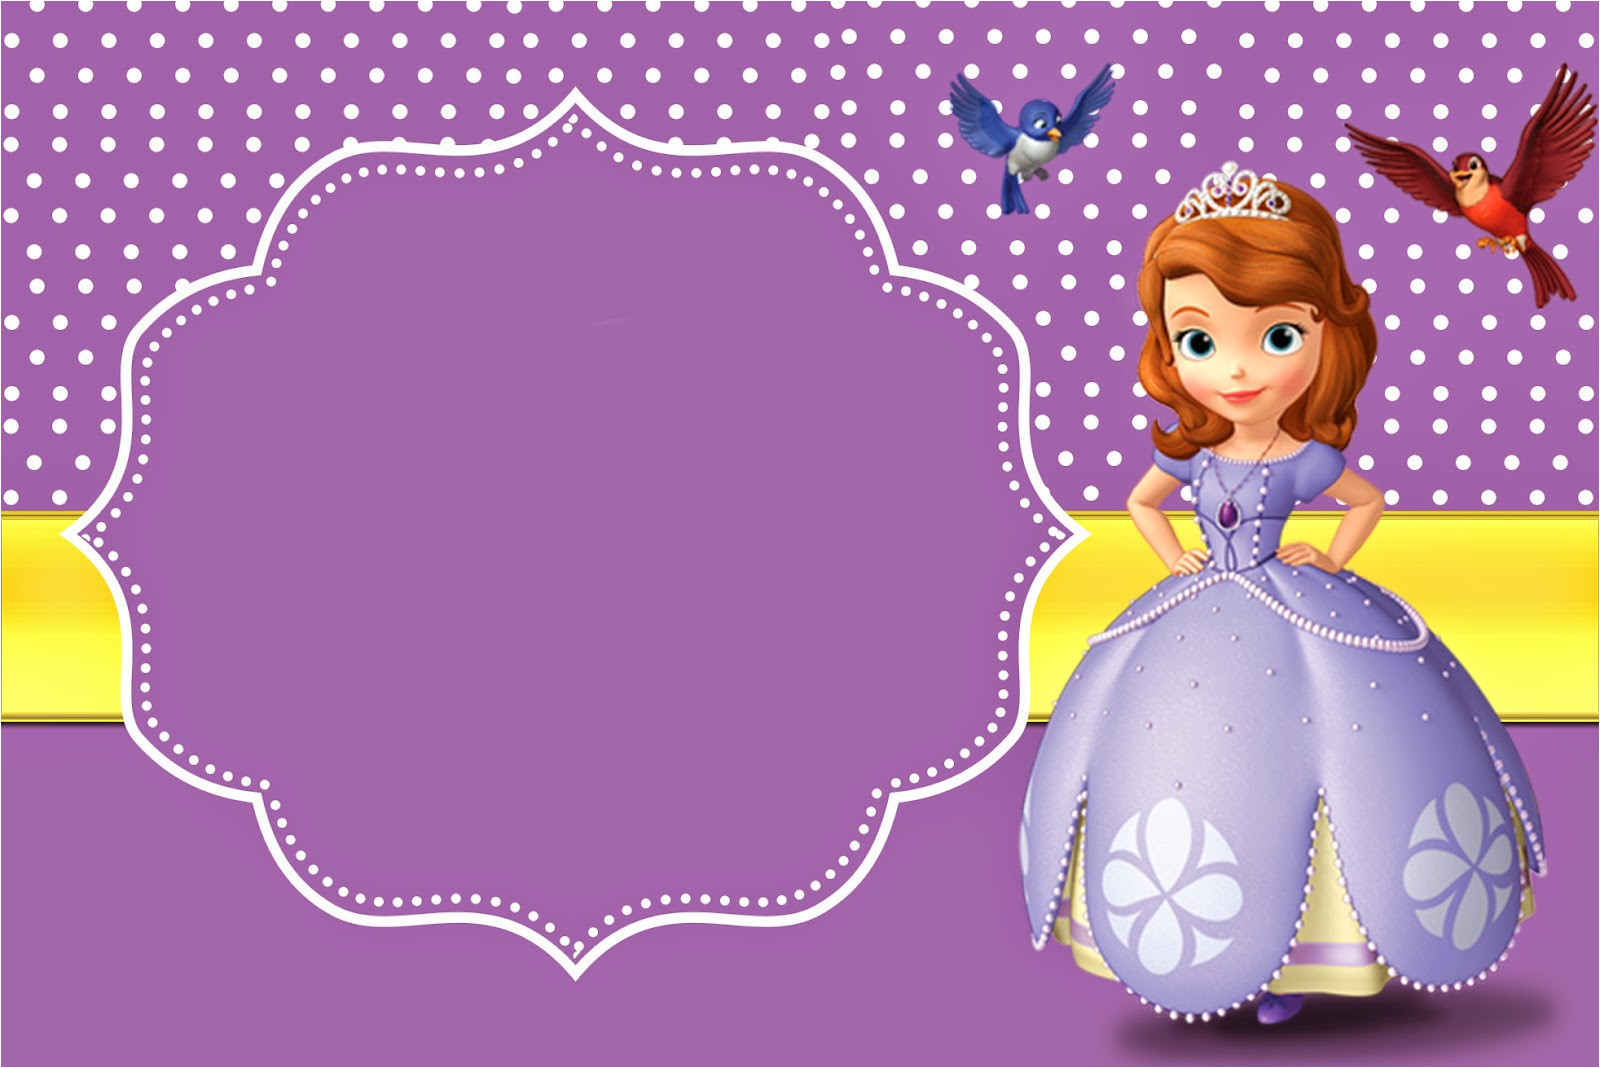 Sofia the First Free Invitation Templates 8 Best Images Of Free Printable Princess sofia Invitations